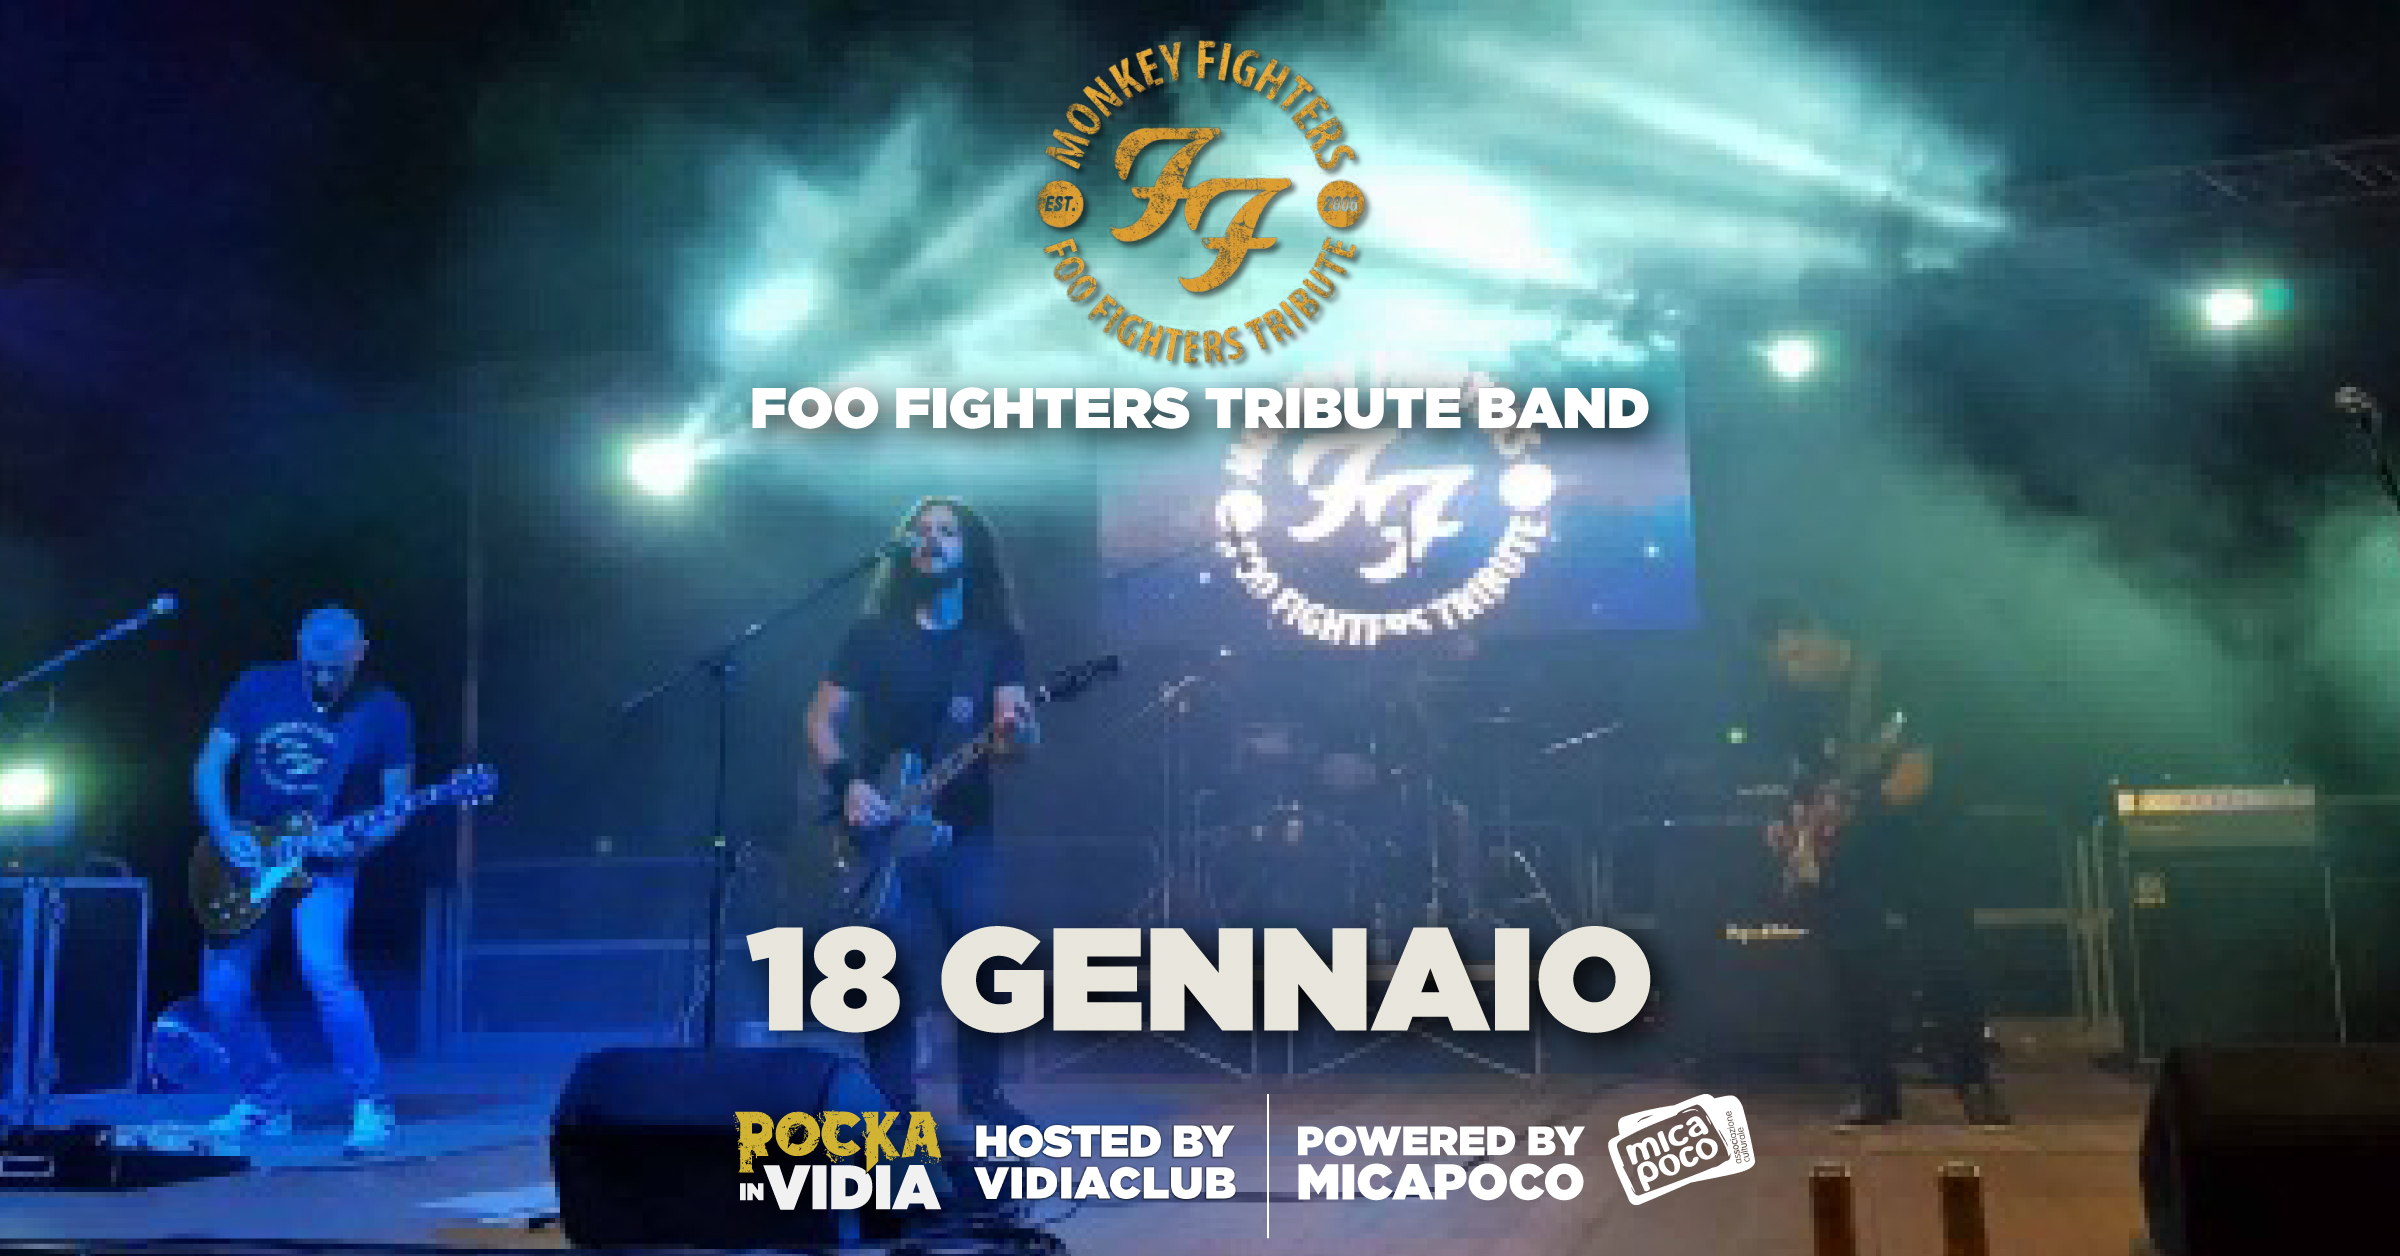 Monkey Fighters tributo ai Foo Fighters